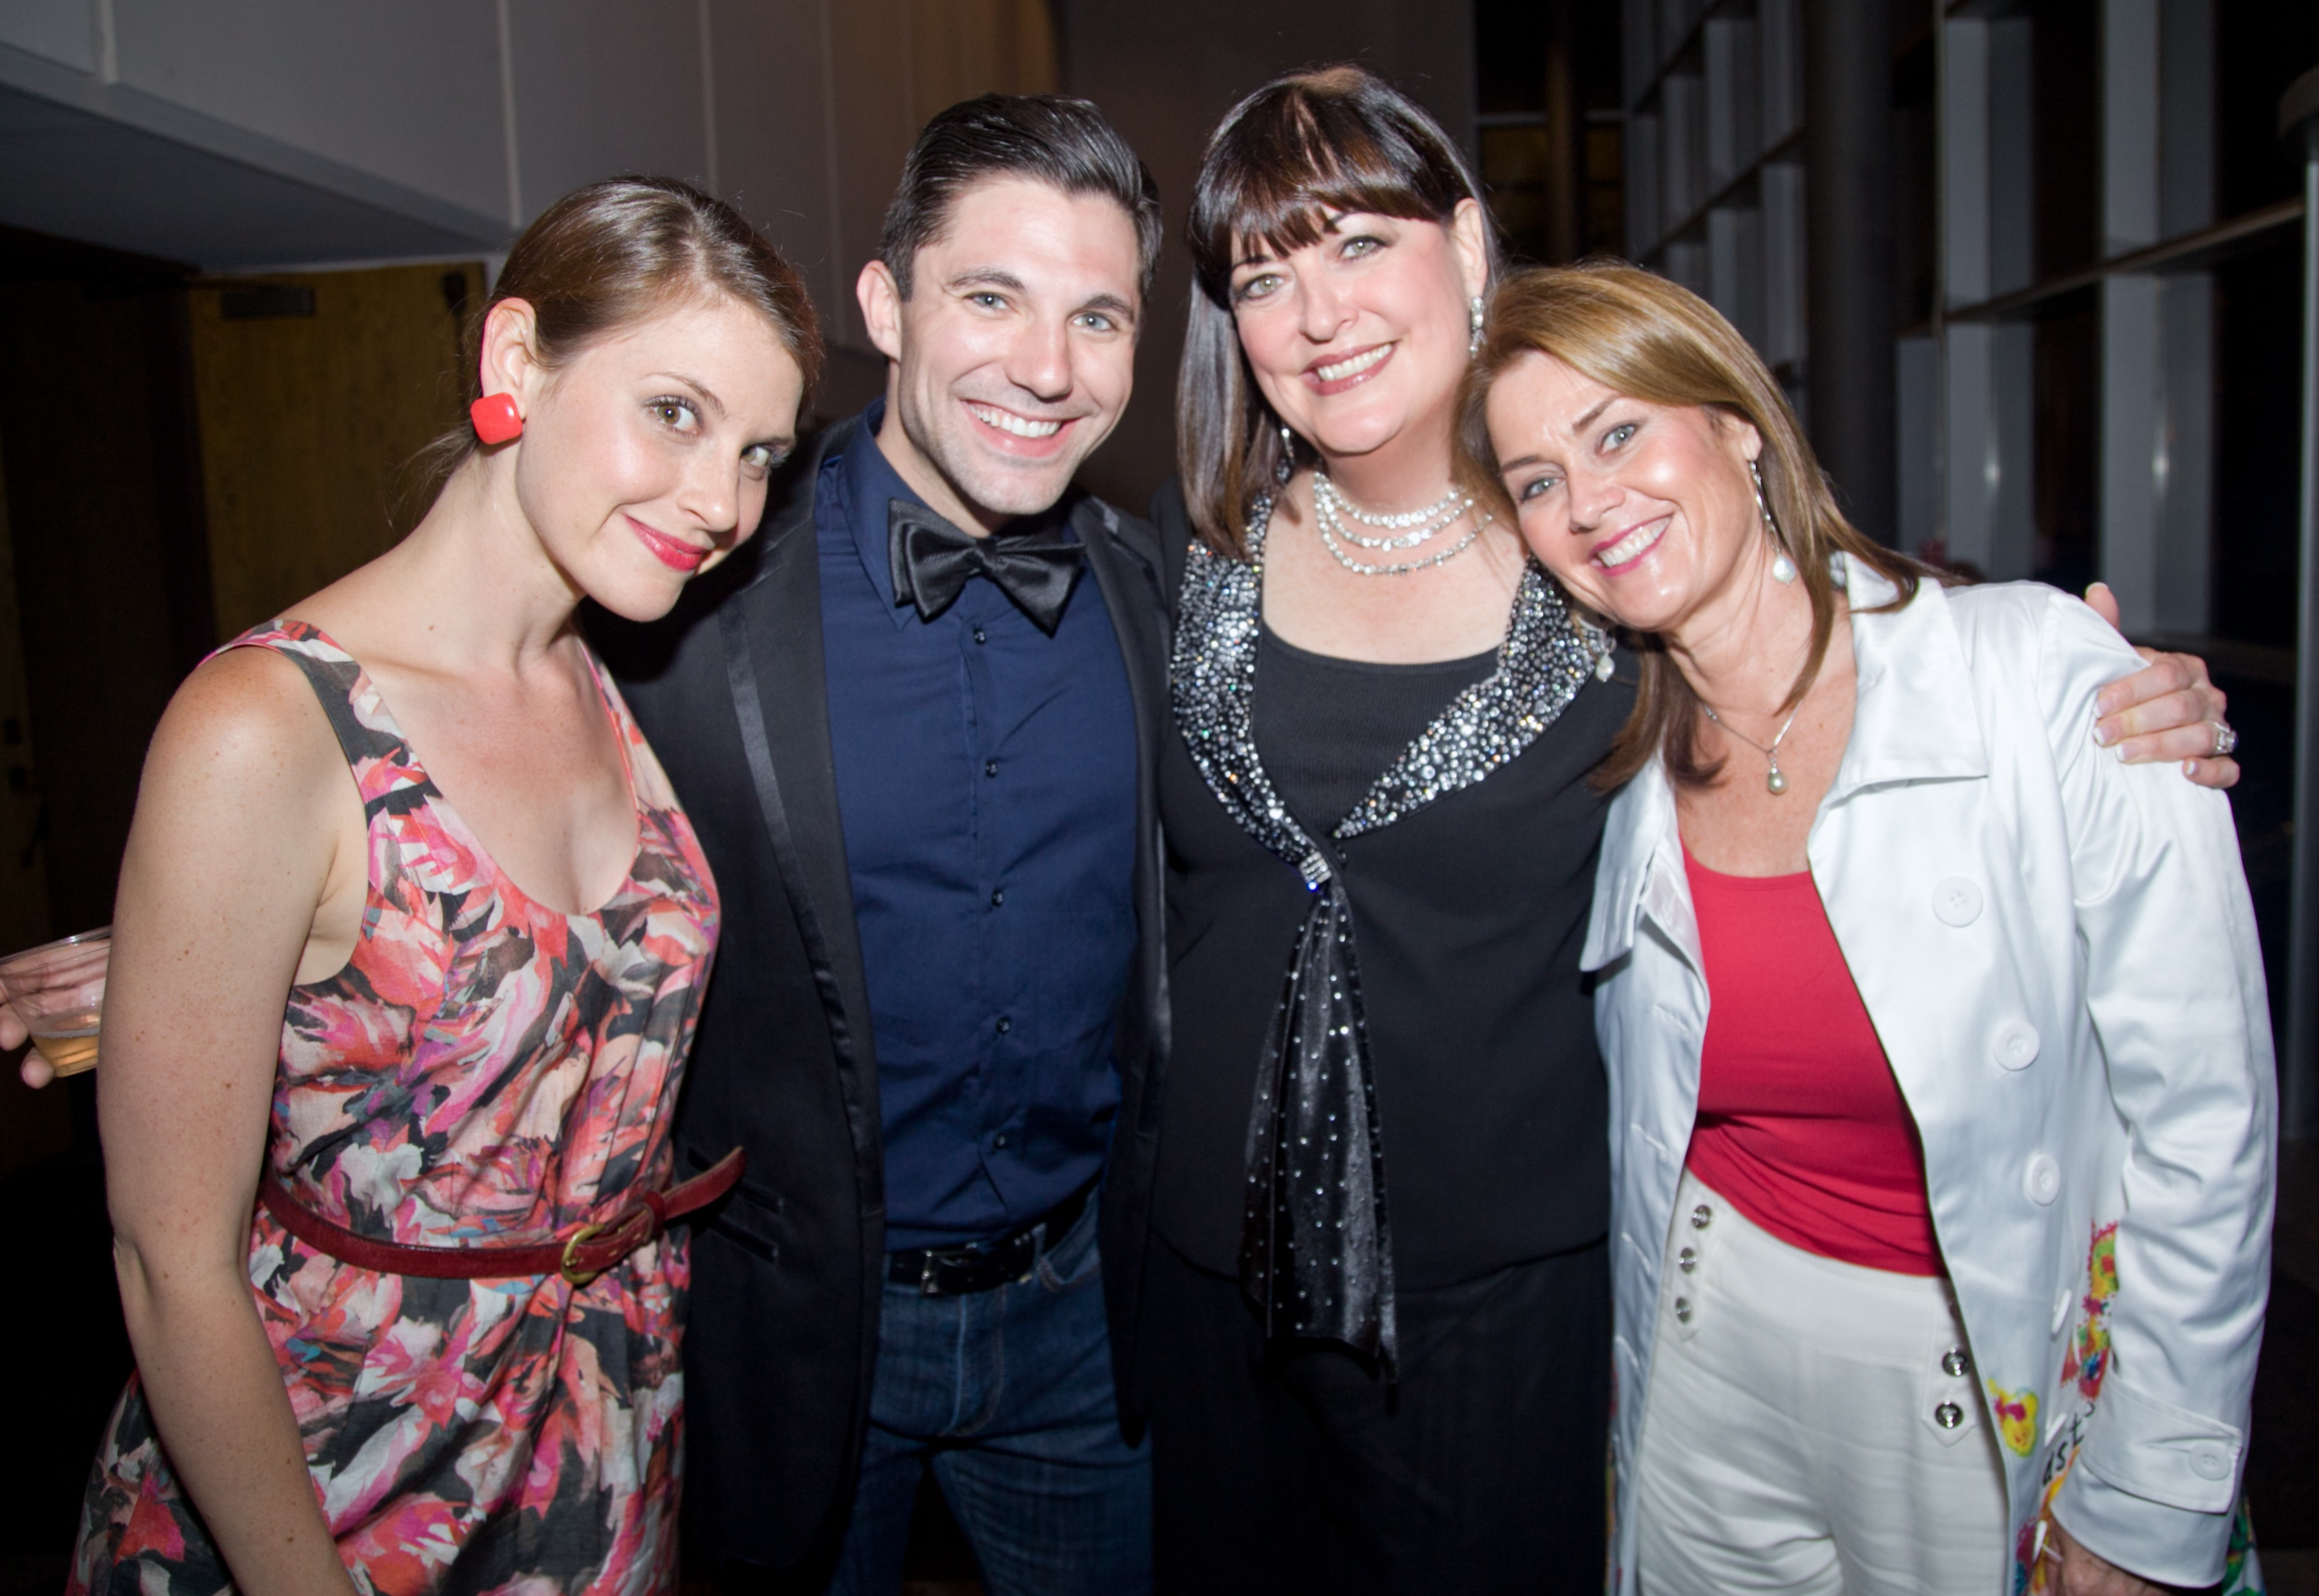 Photo Flash: Ann Hampton Callaway et al. at 2012 Johnny Mercer Foundation Songwriters Project Closing Concert